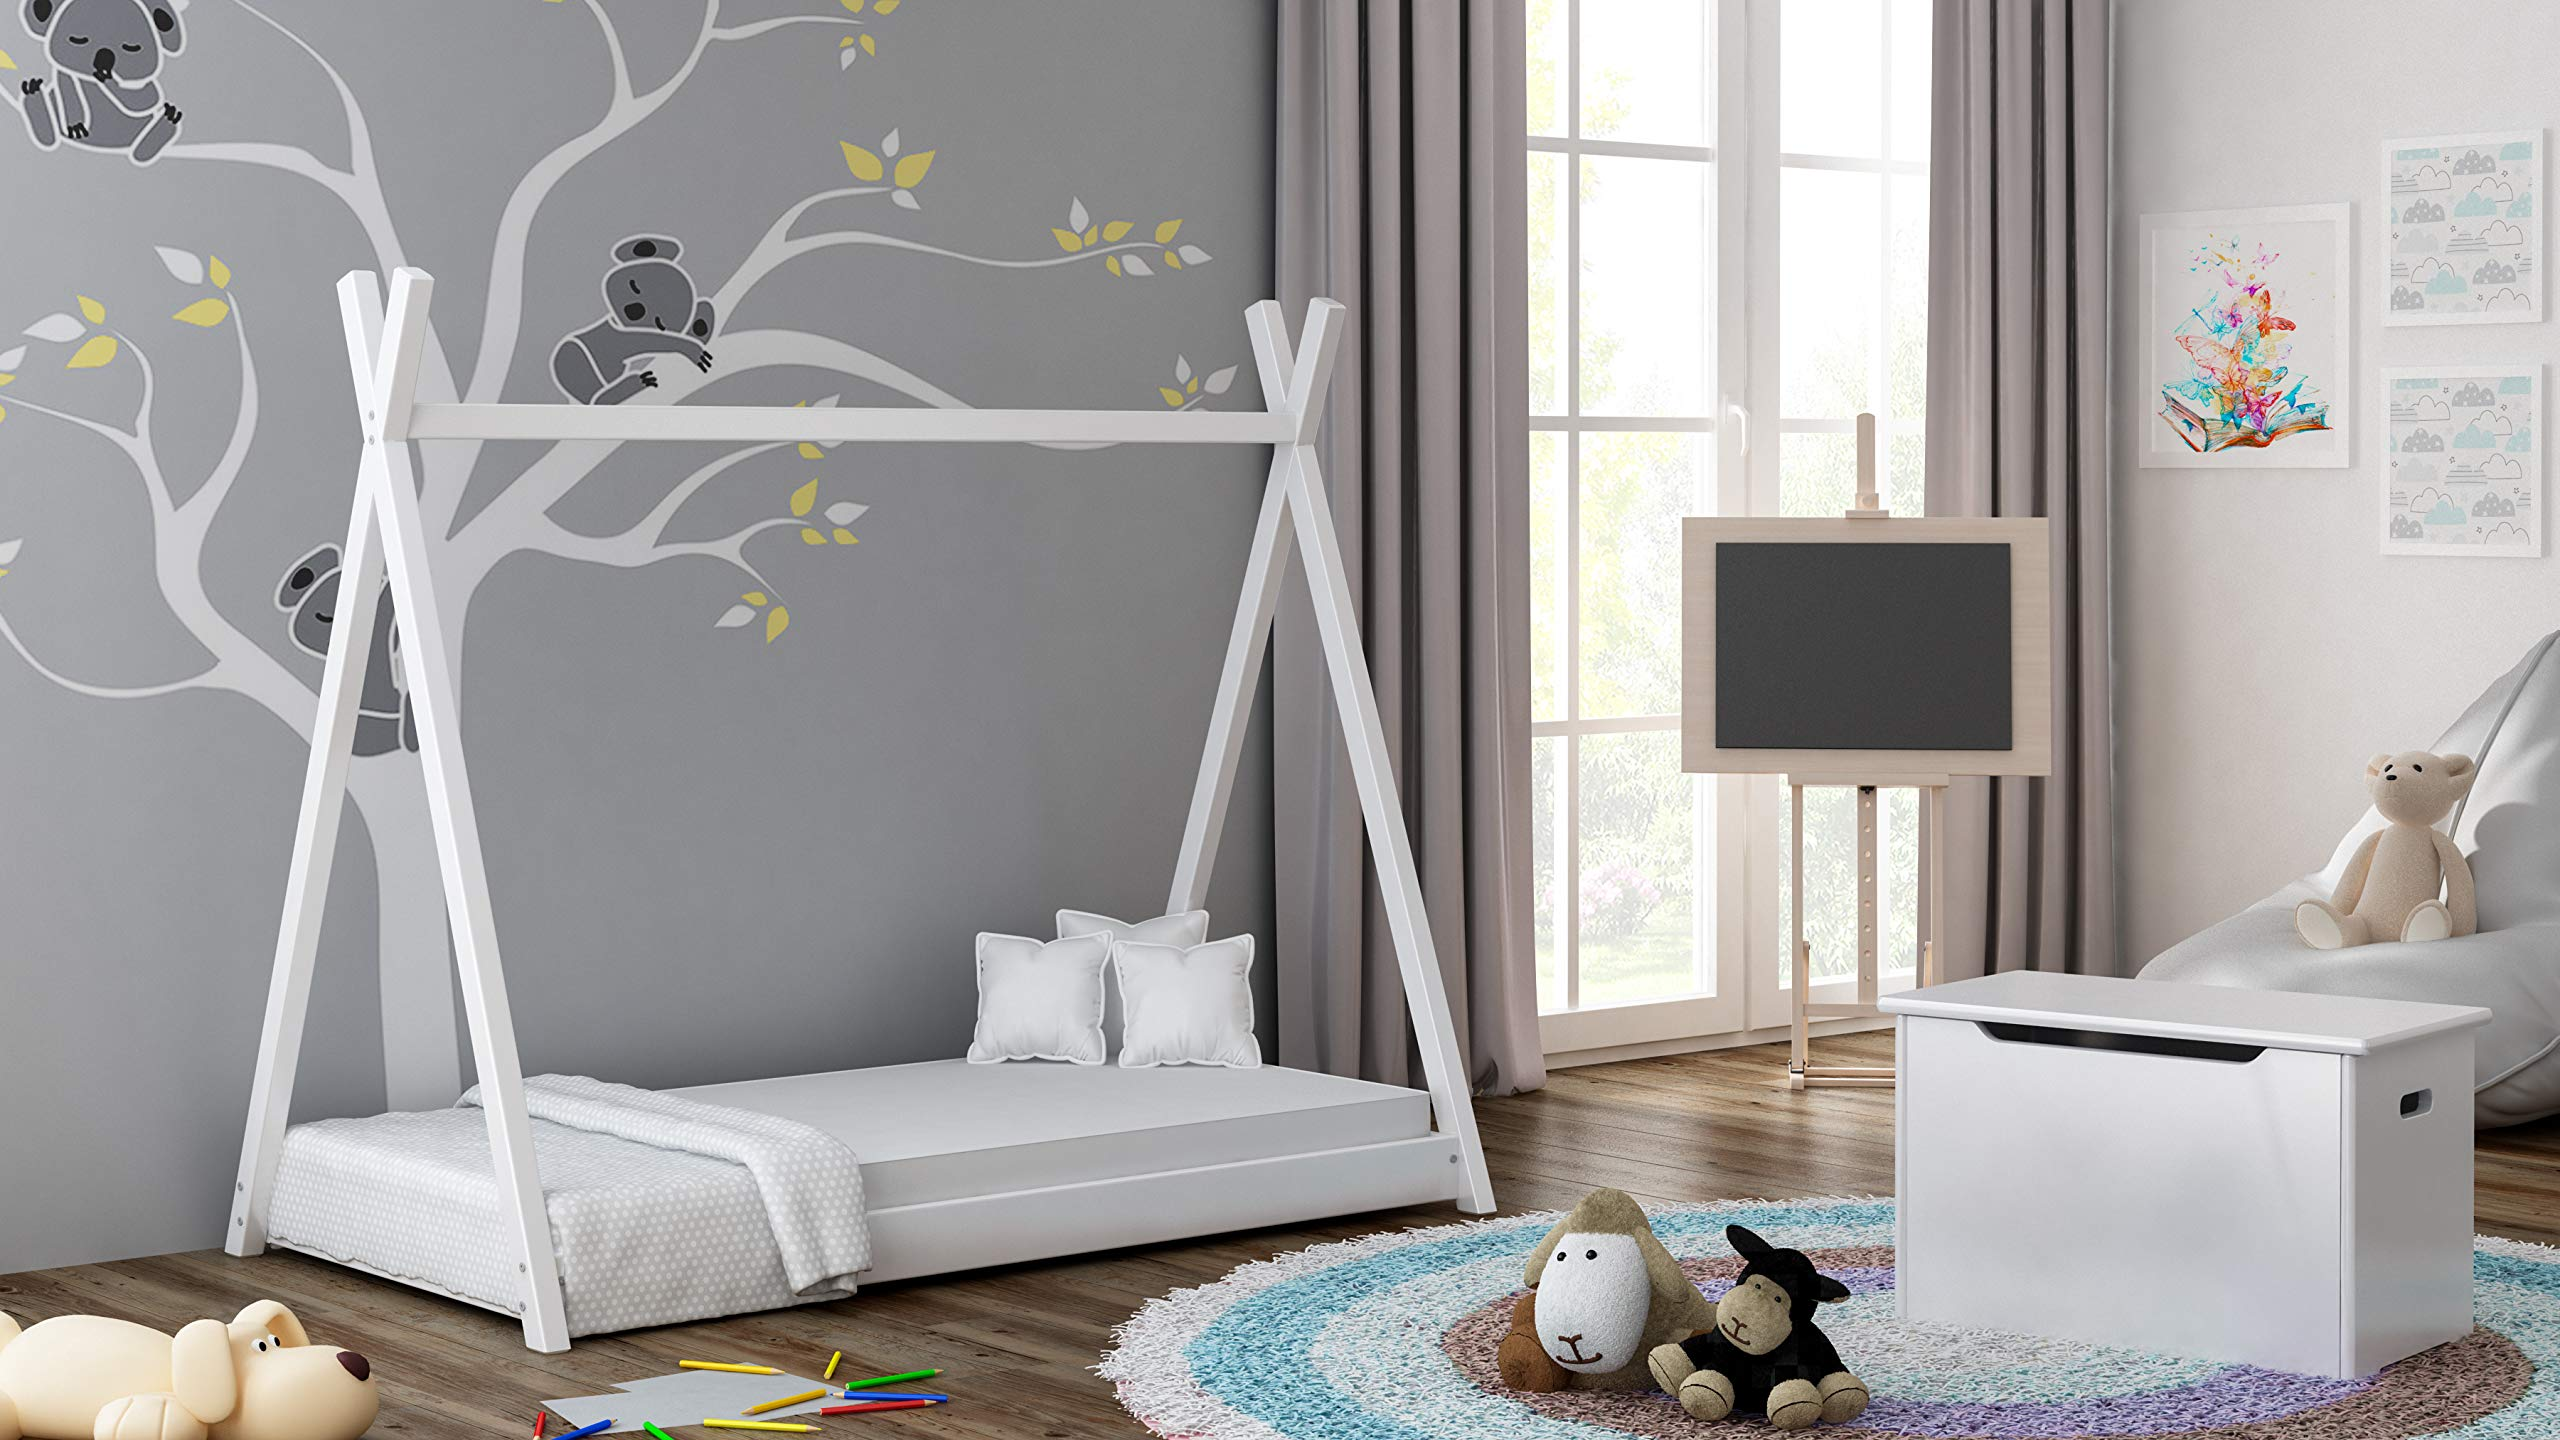 Children's Beds Home Solid Wood Single Canopy Bed - Titus Tepee Style for Kids Children Toddler Junior - No Mattress Included (160x80, White) Children's Beds Home Internal Dimensions in cm's are 140x70, 160x80, 180x80, 180x90, 190x90, 200x90 (External Dimension: 148x83, 168x93, 188x93, 188x103, 198x103, 208x103) Total height up to the top of the structure is 143 cm Made of Solid wood. Has load capacity of up to 190kg, Very Safe Rounded edges on all parts Very Stable and Robust Construction 2